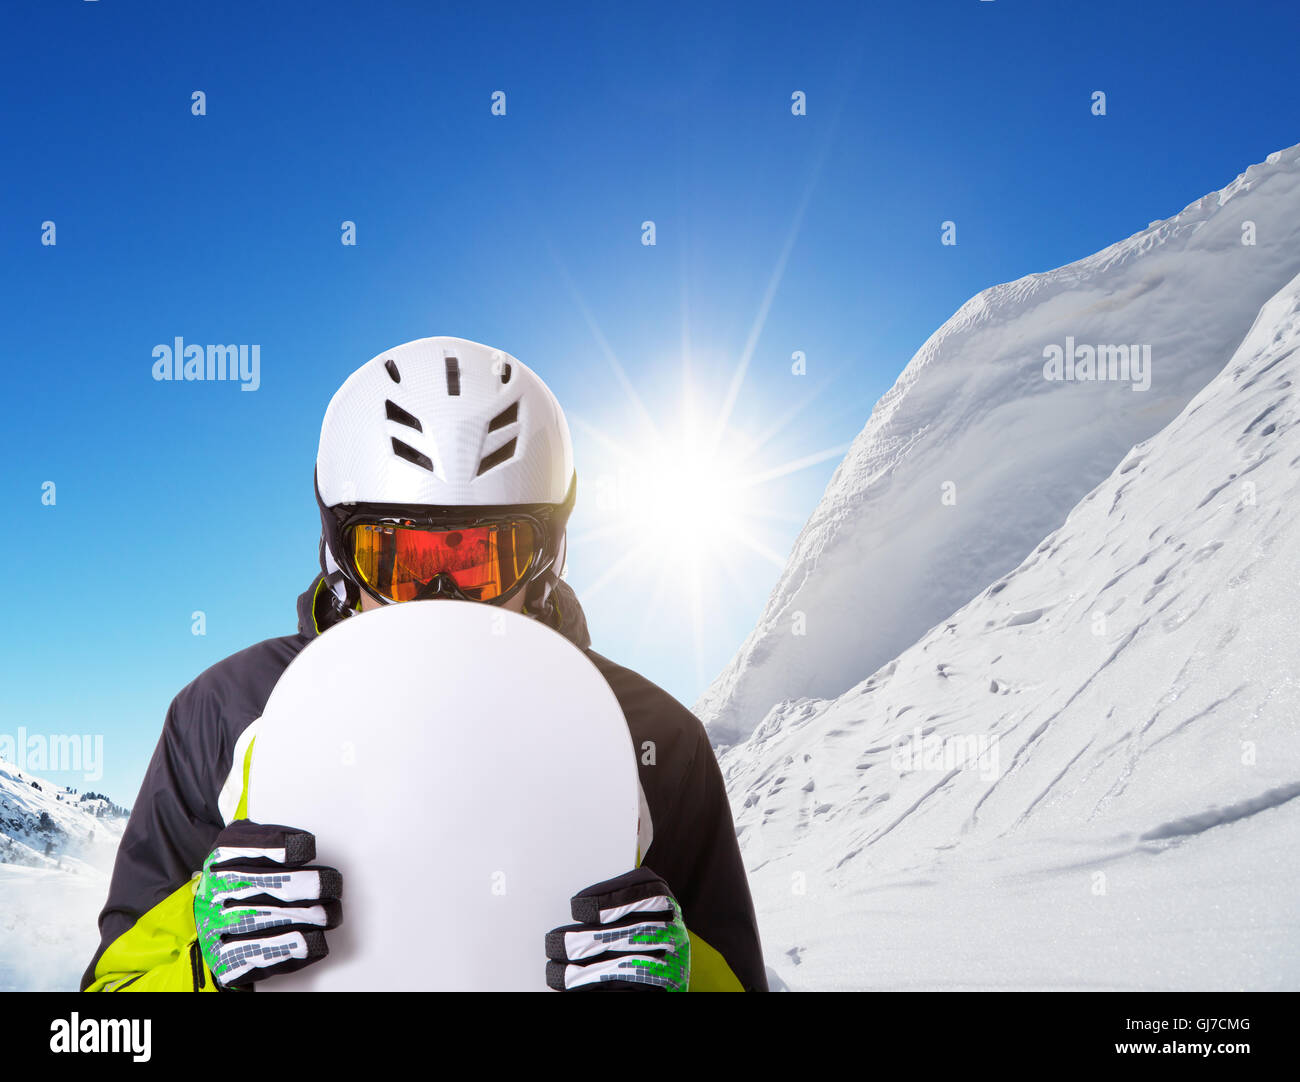 Snowboarder holding his snowboard off piste, beautiful winter landscape panorama on background - Stock Image